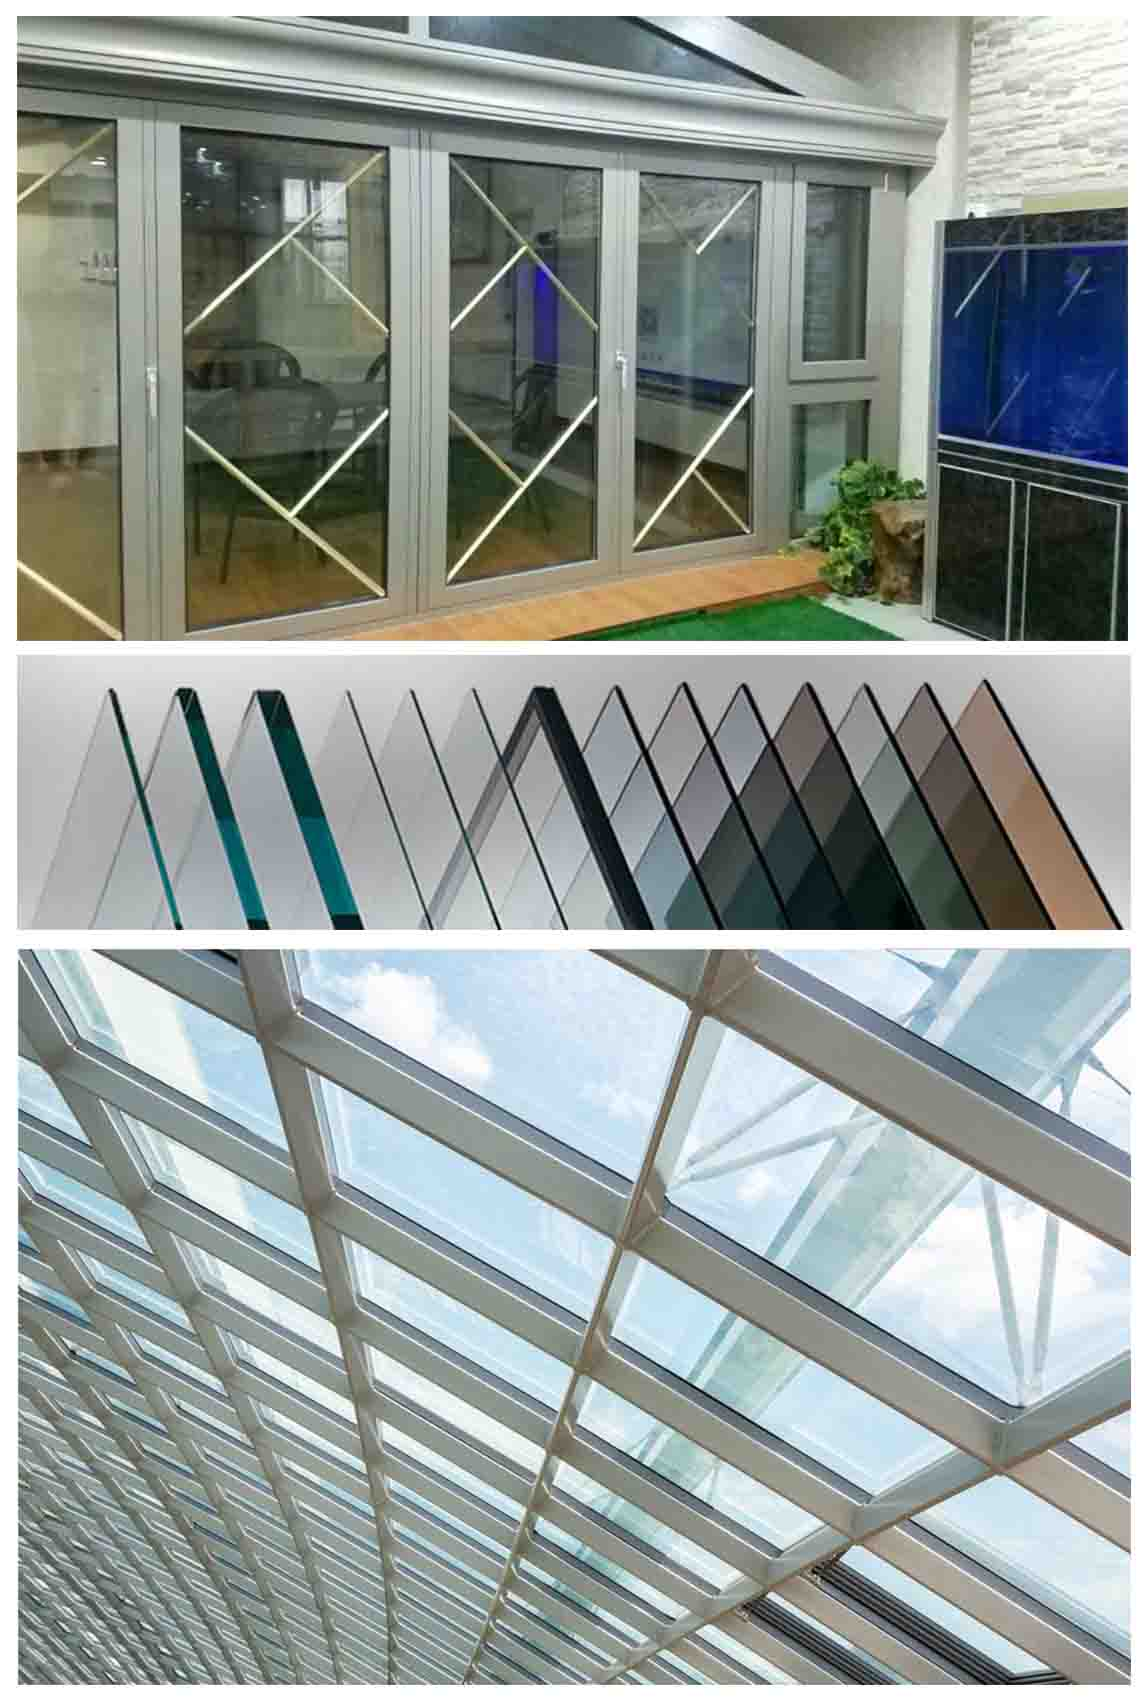 frameless frosted tempered glass wall panel customized design for showering enclosure-5